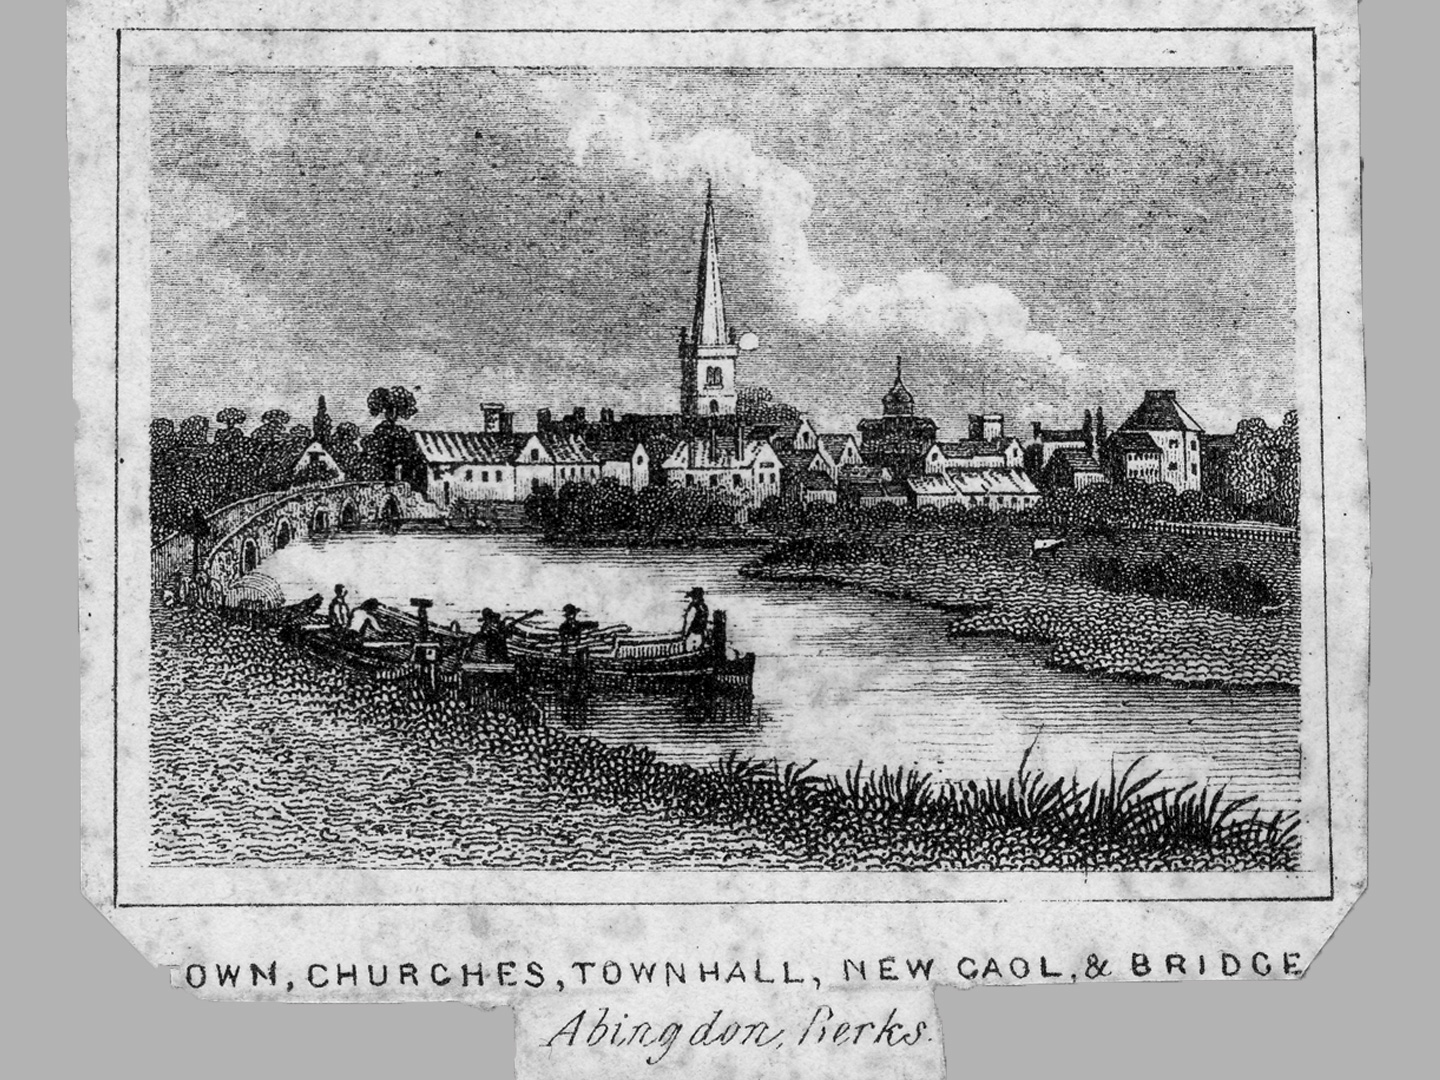 town-churches-town-hall-new-gaol-bridge